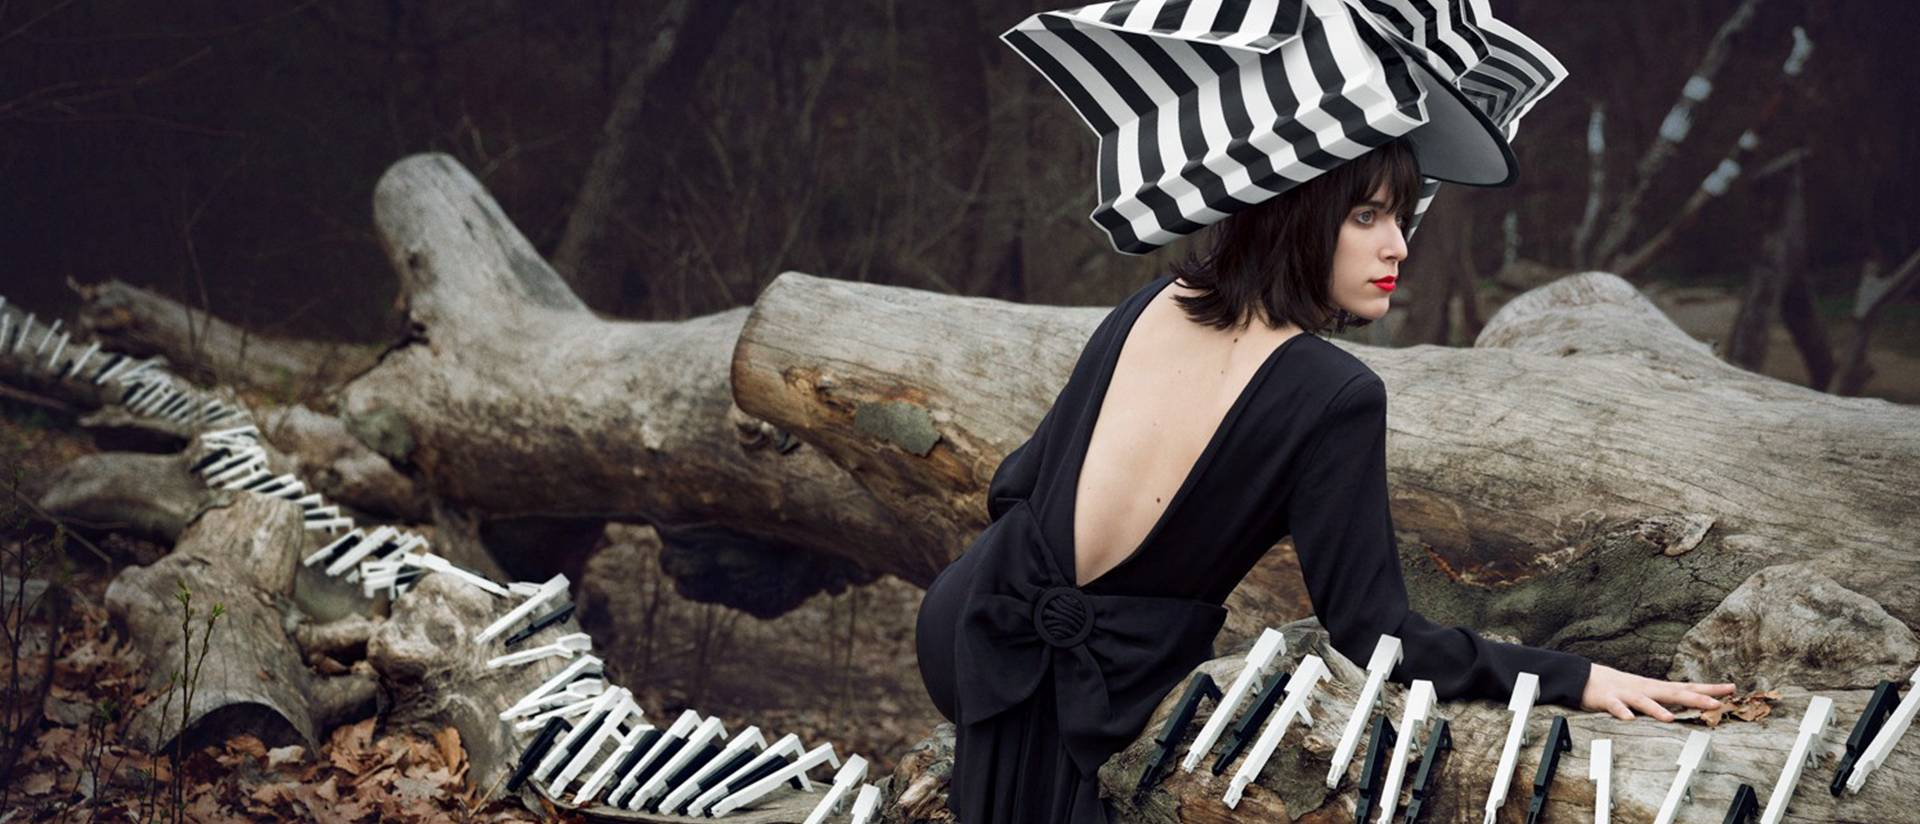 Hanna Agar's photo of woman posing with piano keys in the woods